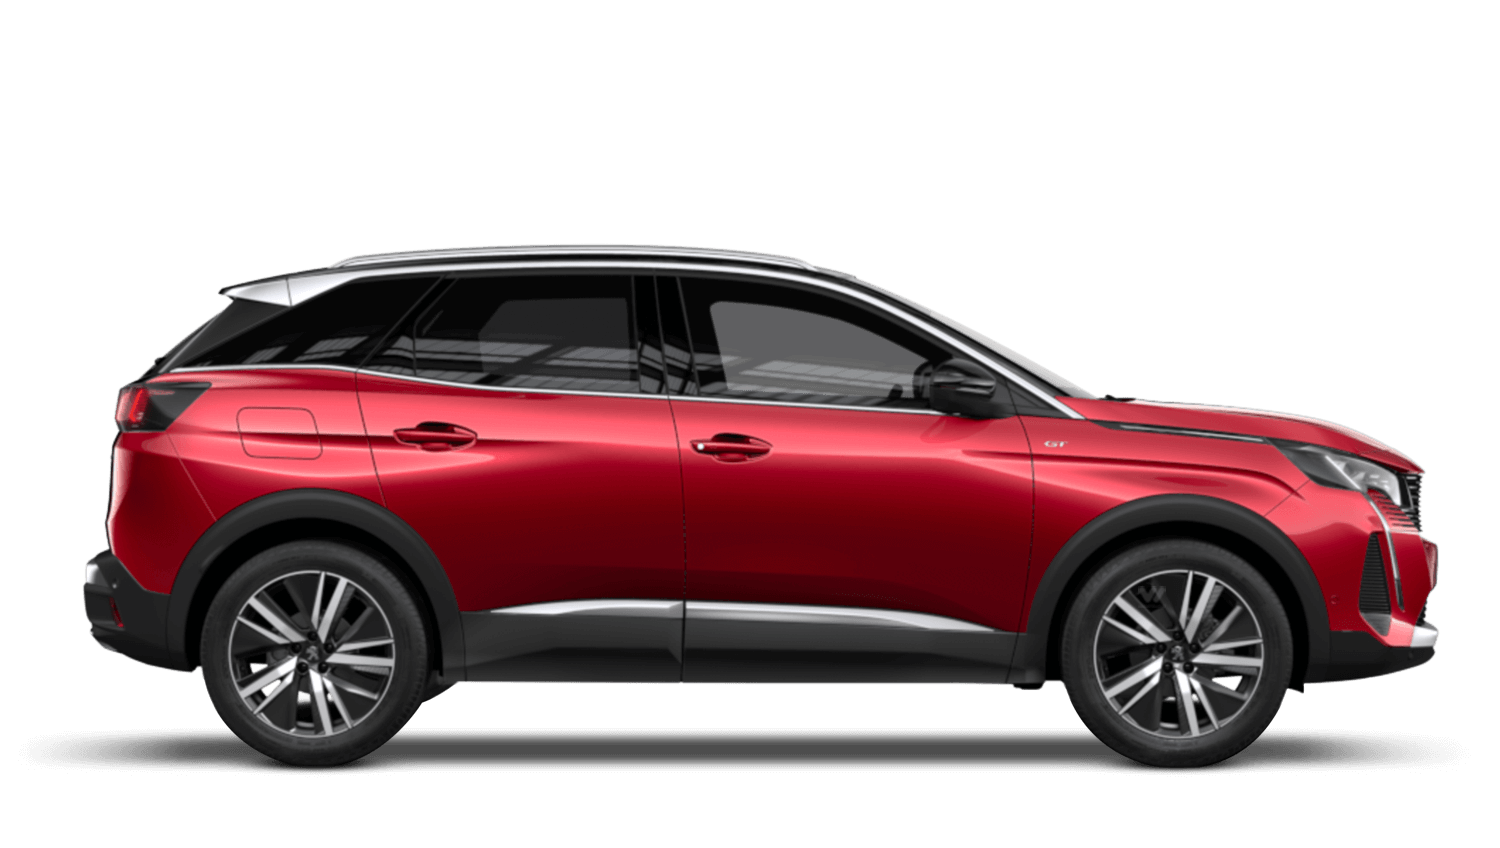 Ultimate Red New Peugeot 3008 SUV